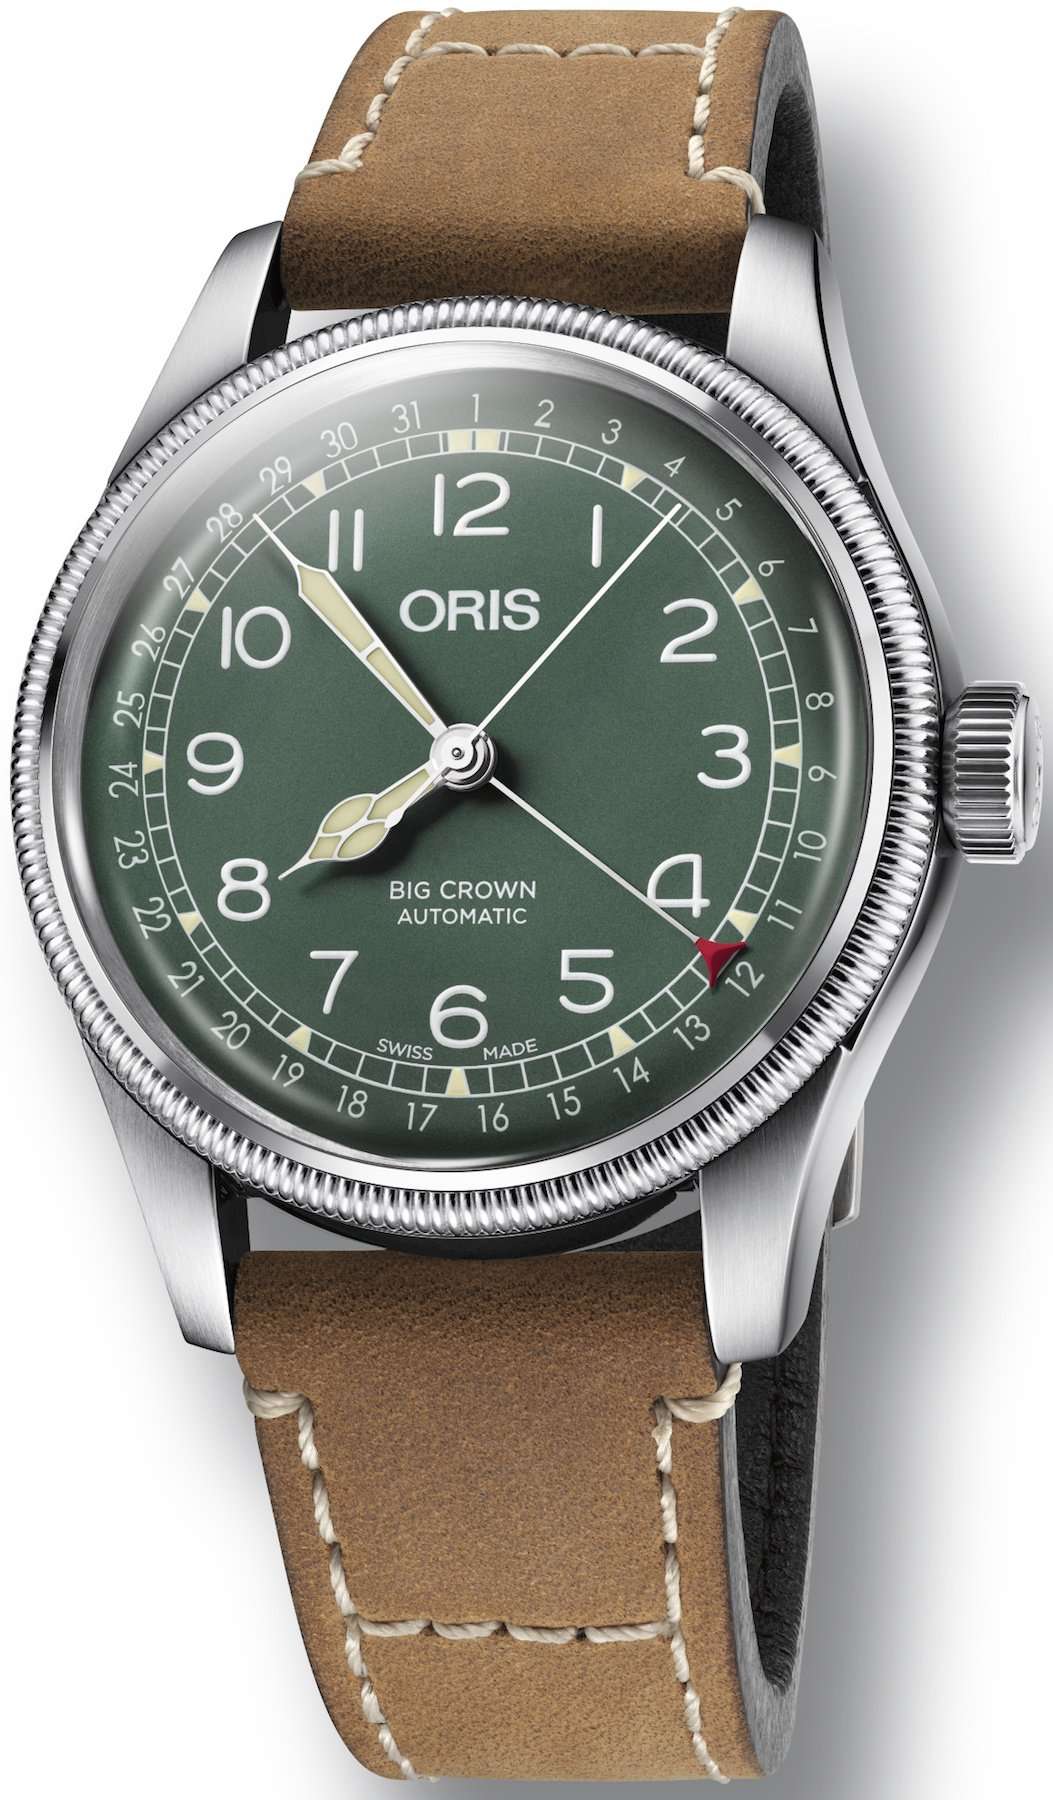 Buy this new Oris Big Crown 01 754 7741 4078-Set LS mens watch for ... 241dd647359c